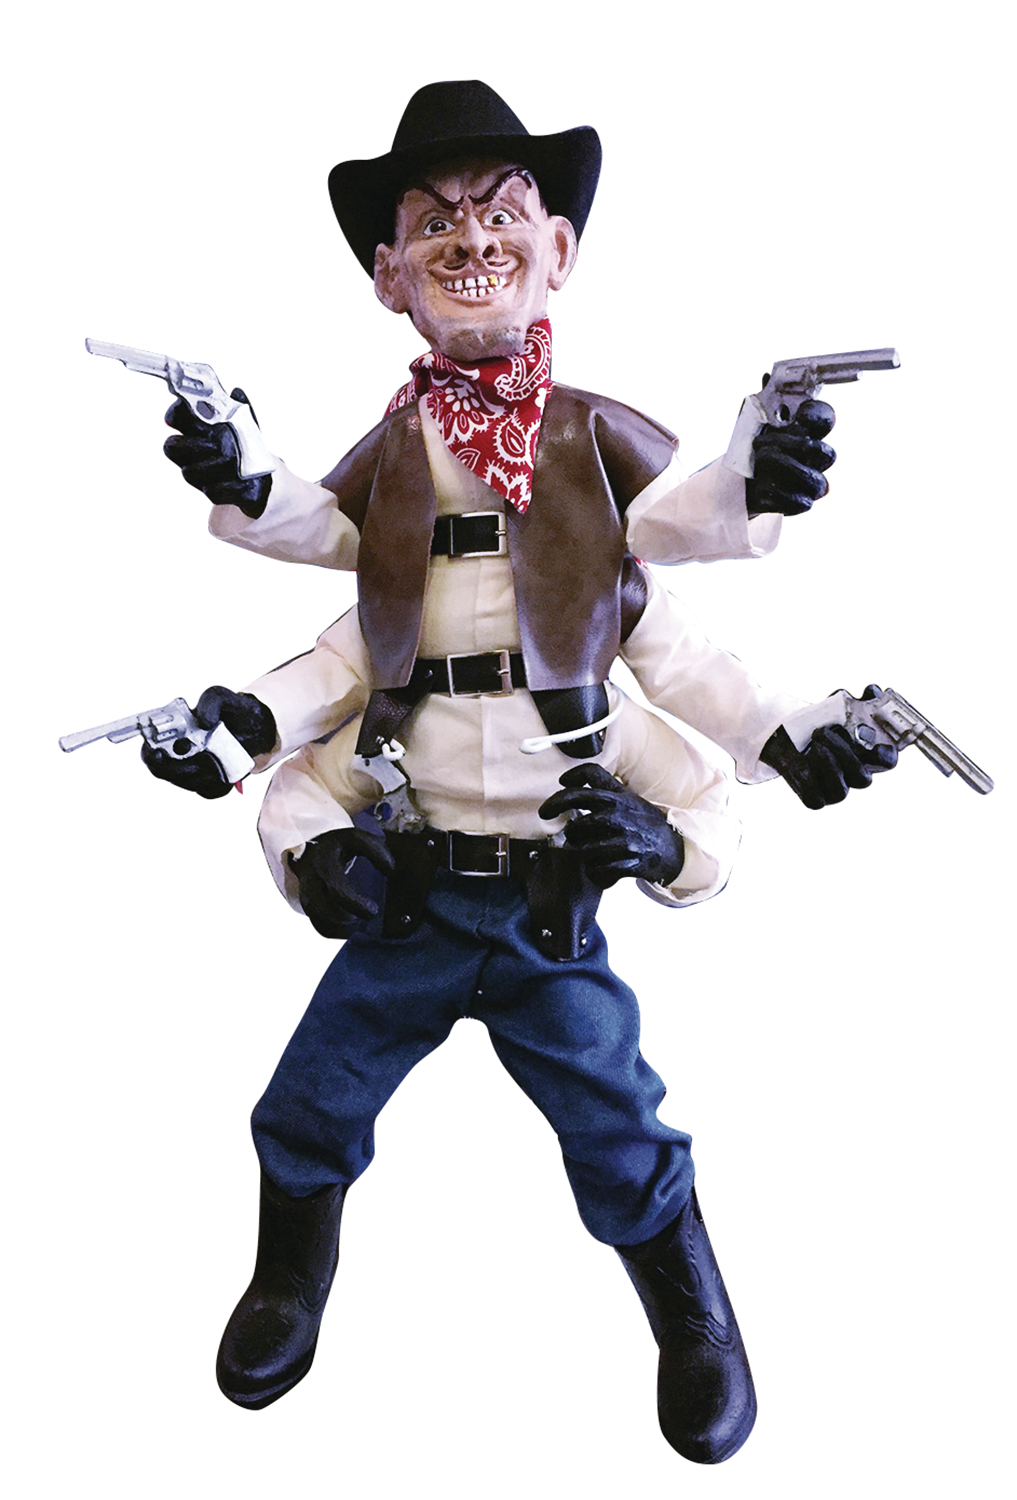 PUPPET MASTER ORIGINALS 1/1 SCALE SIX SHOOTER REPLICA